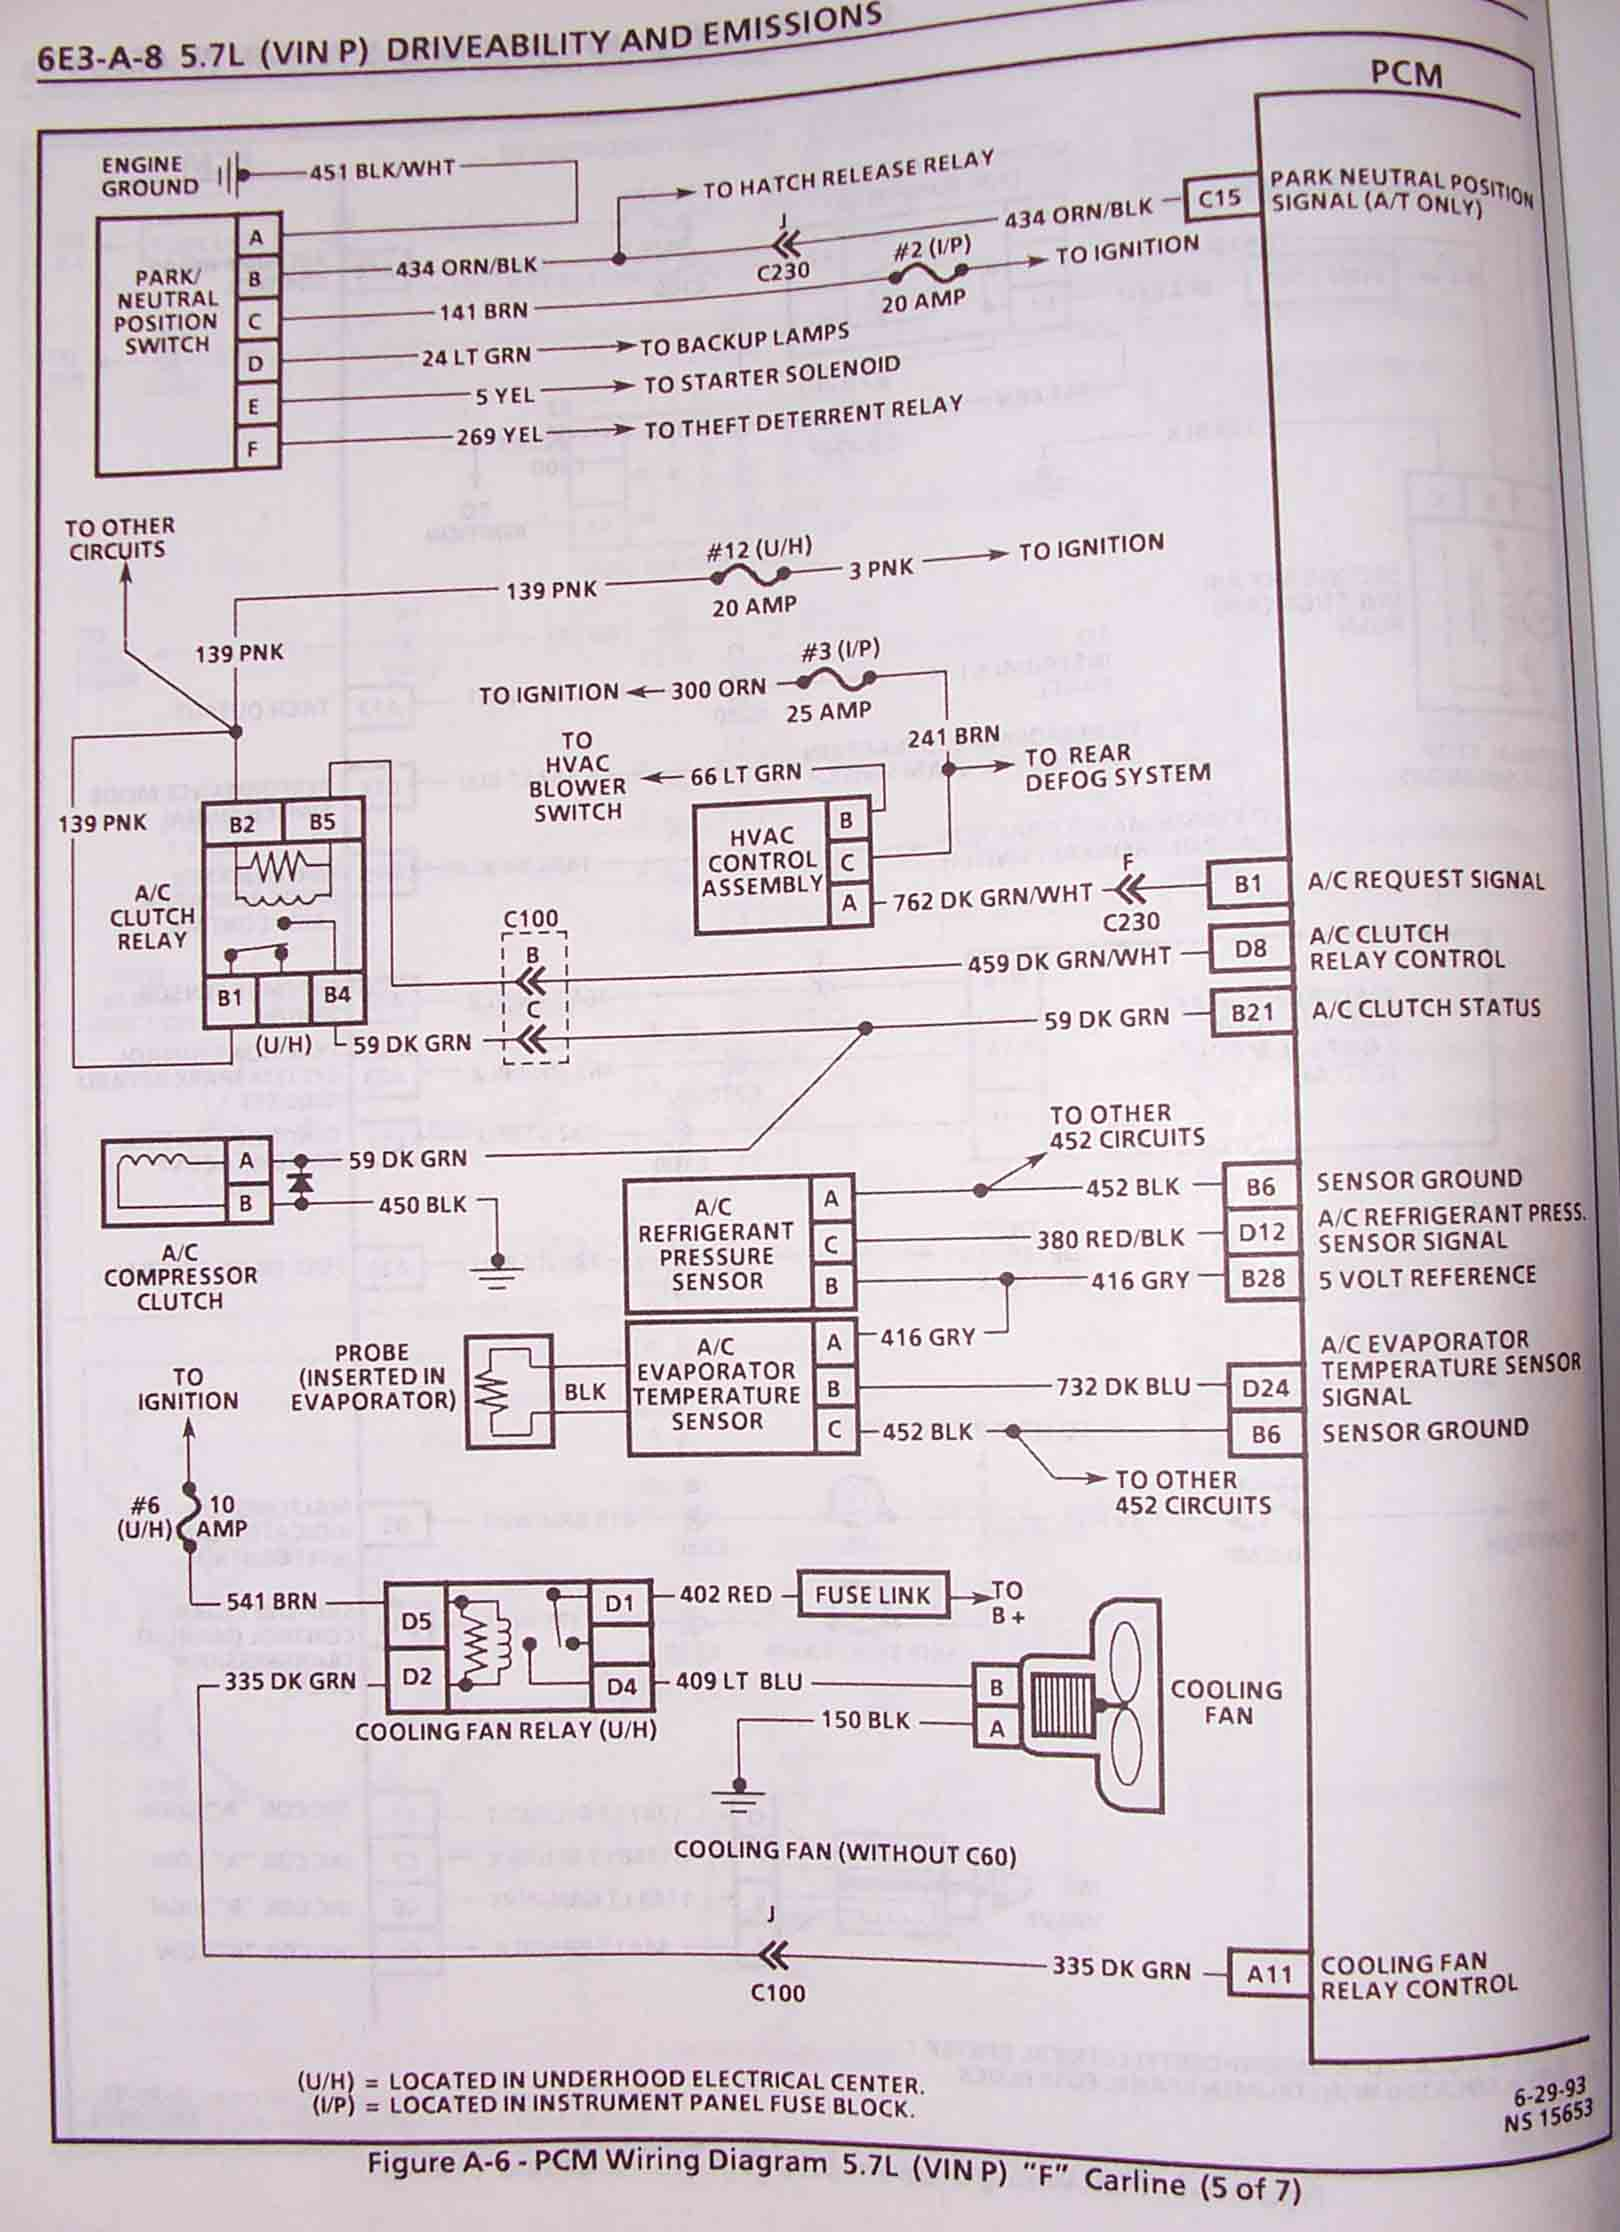 1994 1995 Chevrolet Camaro Fuse Box Diagram Simple Wiring 1991 Chevy Diagrams Schematics